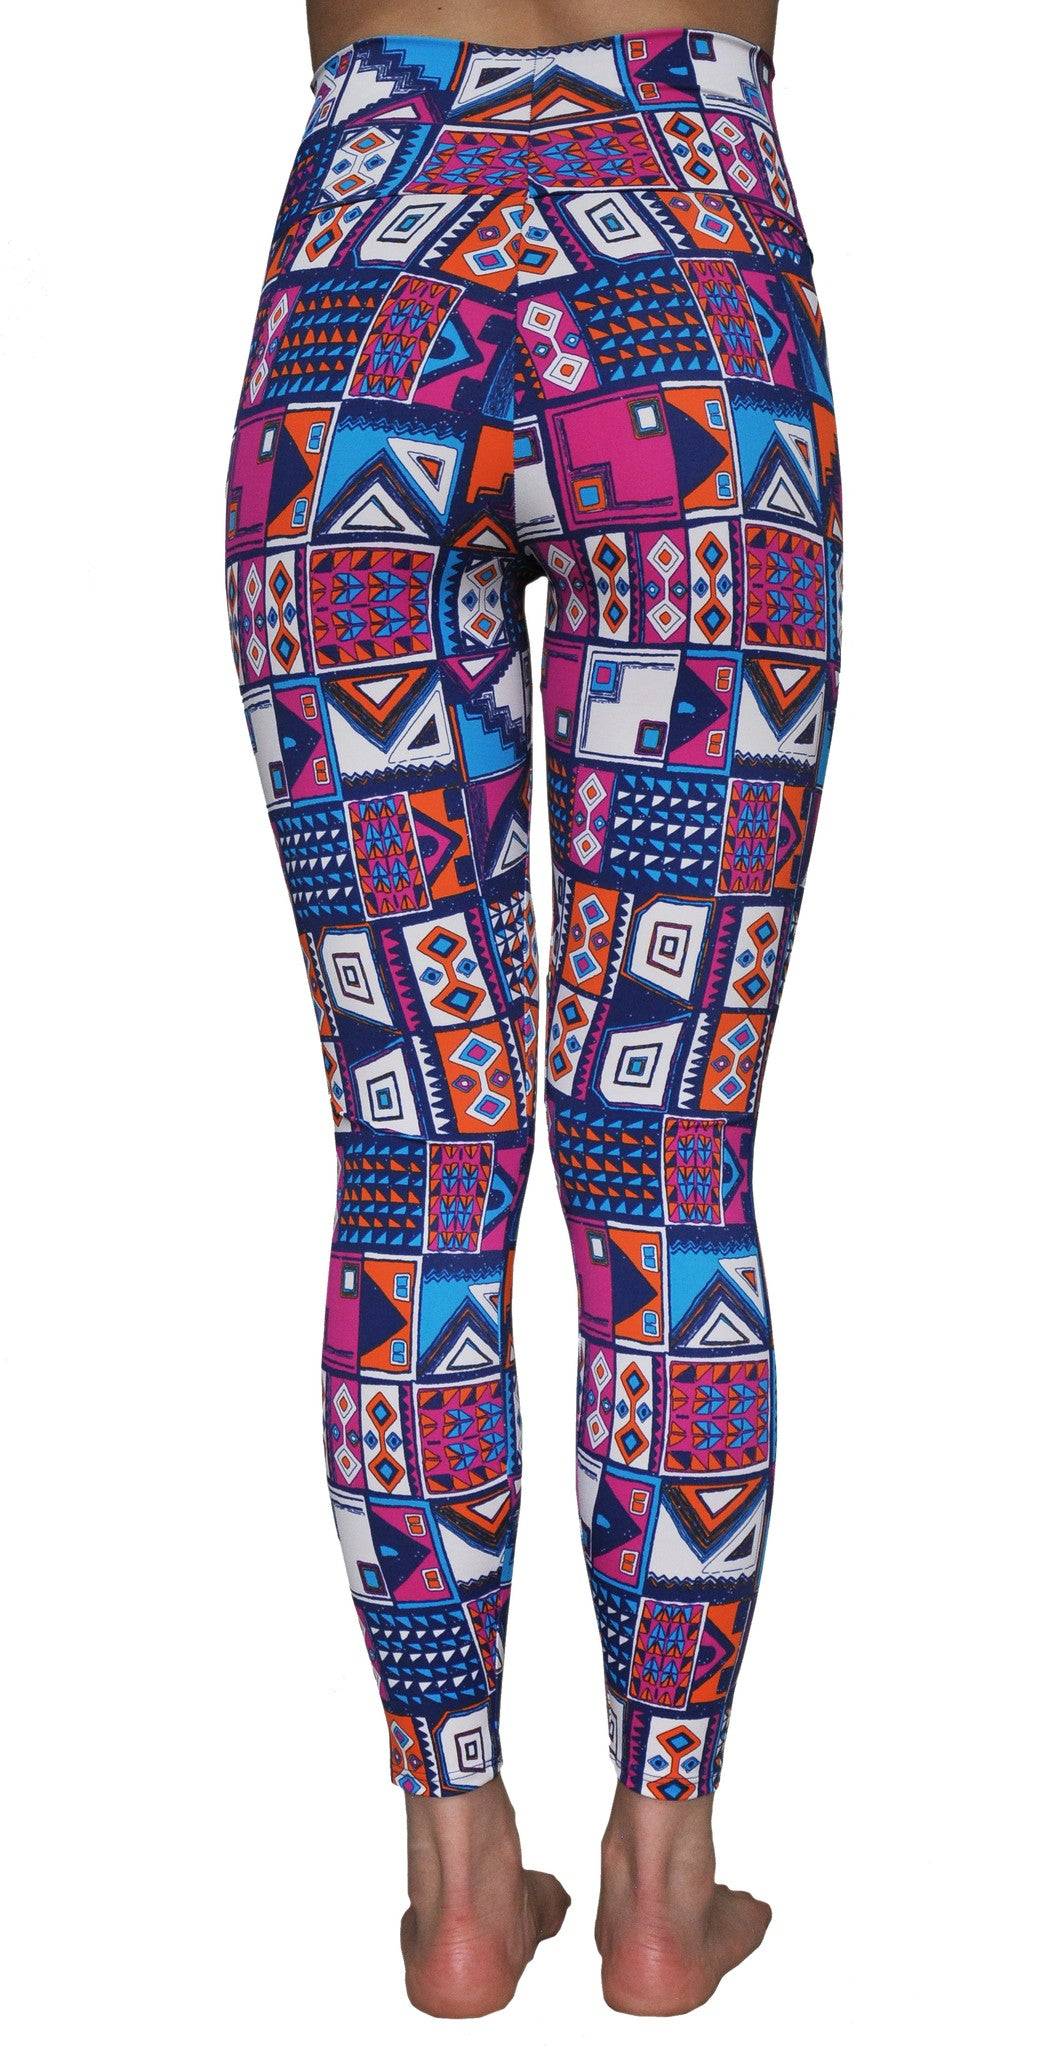 fdcf1e01f0396 Abstract Ankle Length Leggings